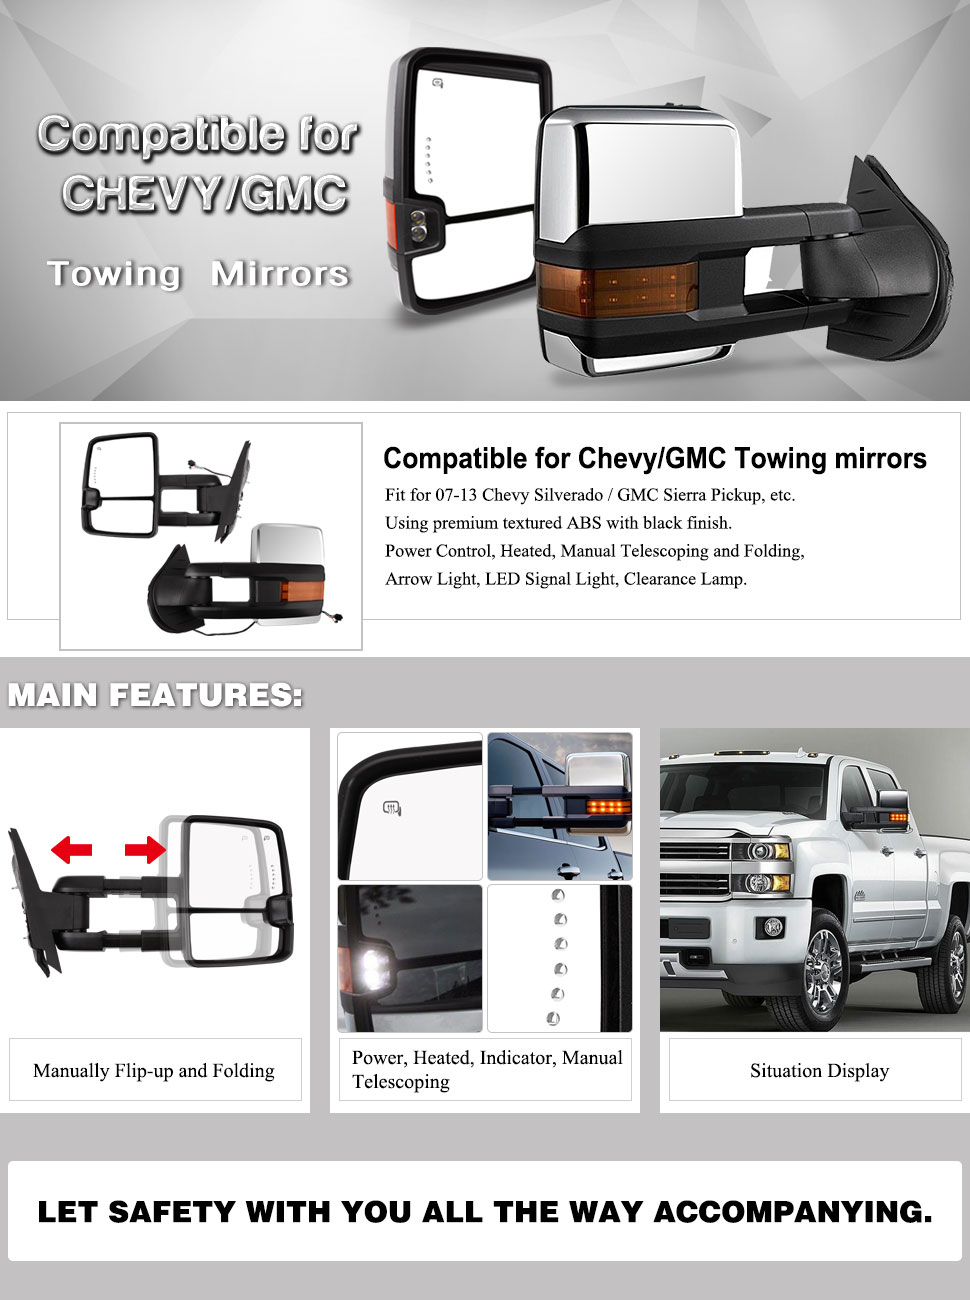 Yitamotor Towing Mirrors For Chevy Gmc Power Heated Led 2008 Yukon Engine Wiring Diagrams Silverado Sierra Truck Chrome Signal Arrow Clearance Lamps